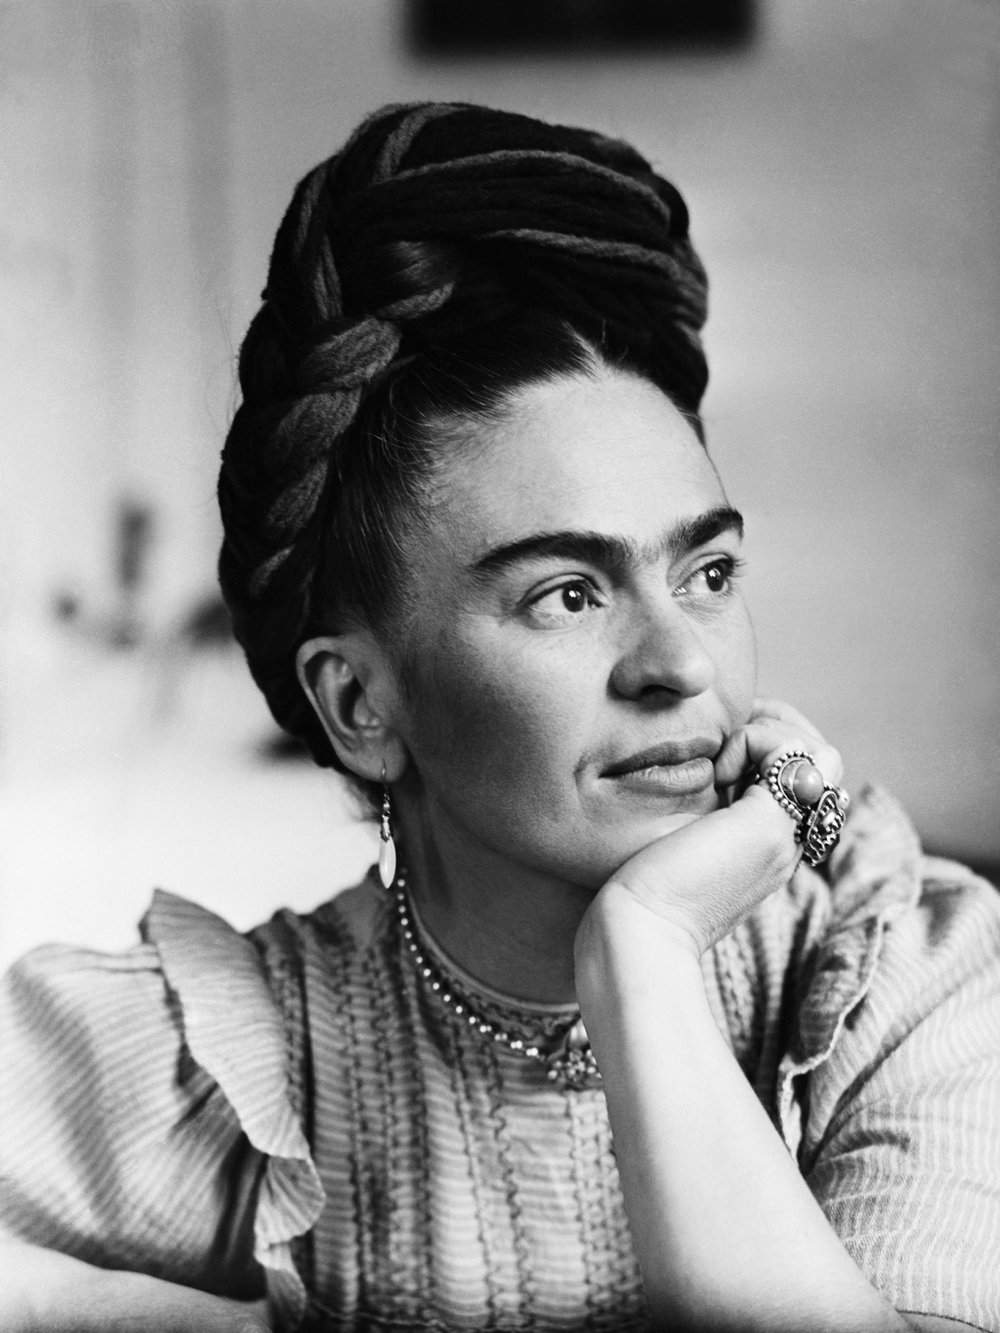 Frida Khalo - Frida Khalo is a well known Mexican artist who dealt with many hardships throughout her entire life. She is known for her bright paintings including self portraits. Frida insisted that her painting were her reality which is what made her work more riveting and raw.